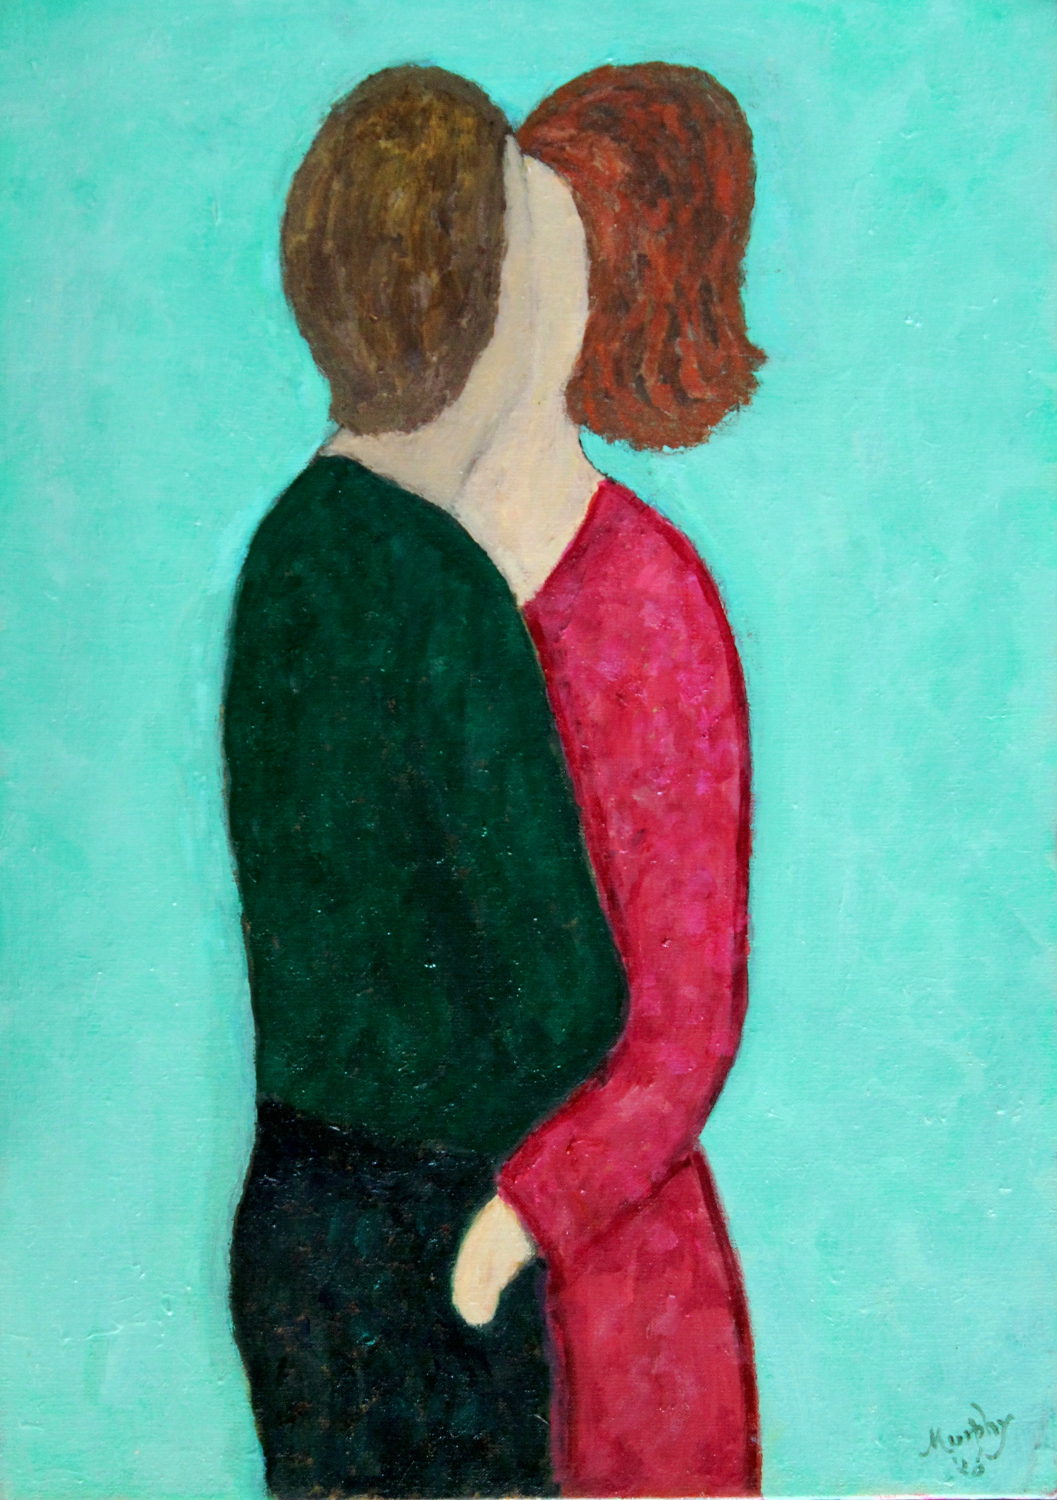 Price-of-a-Kiss-65-x-46-cm-oil-on-canvas-web